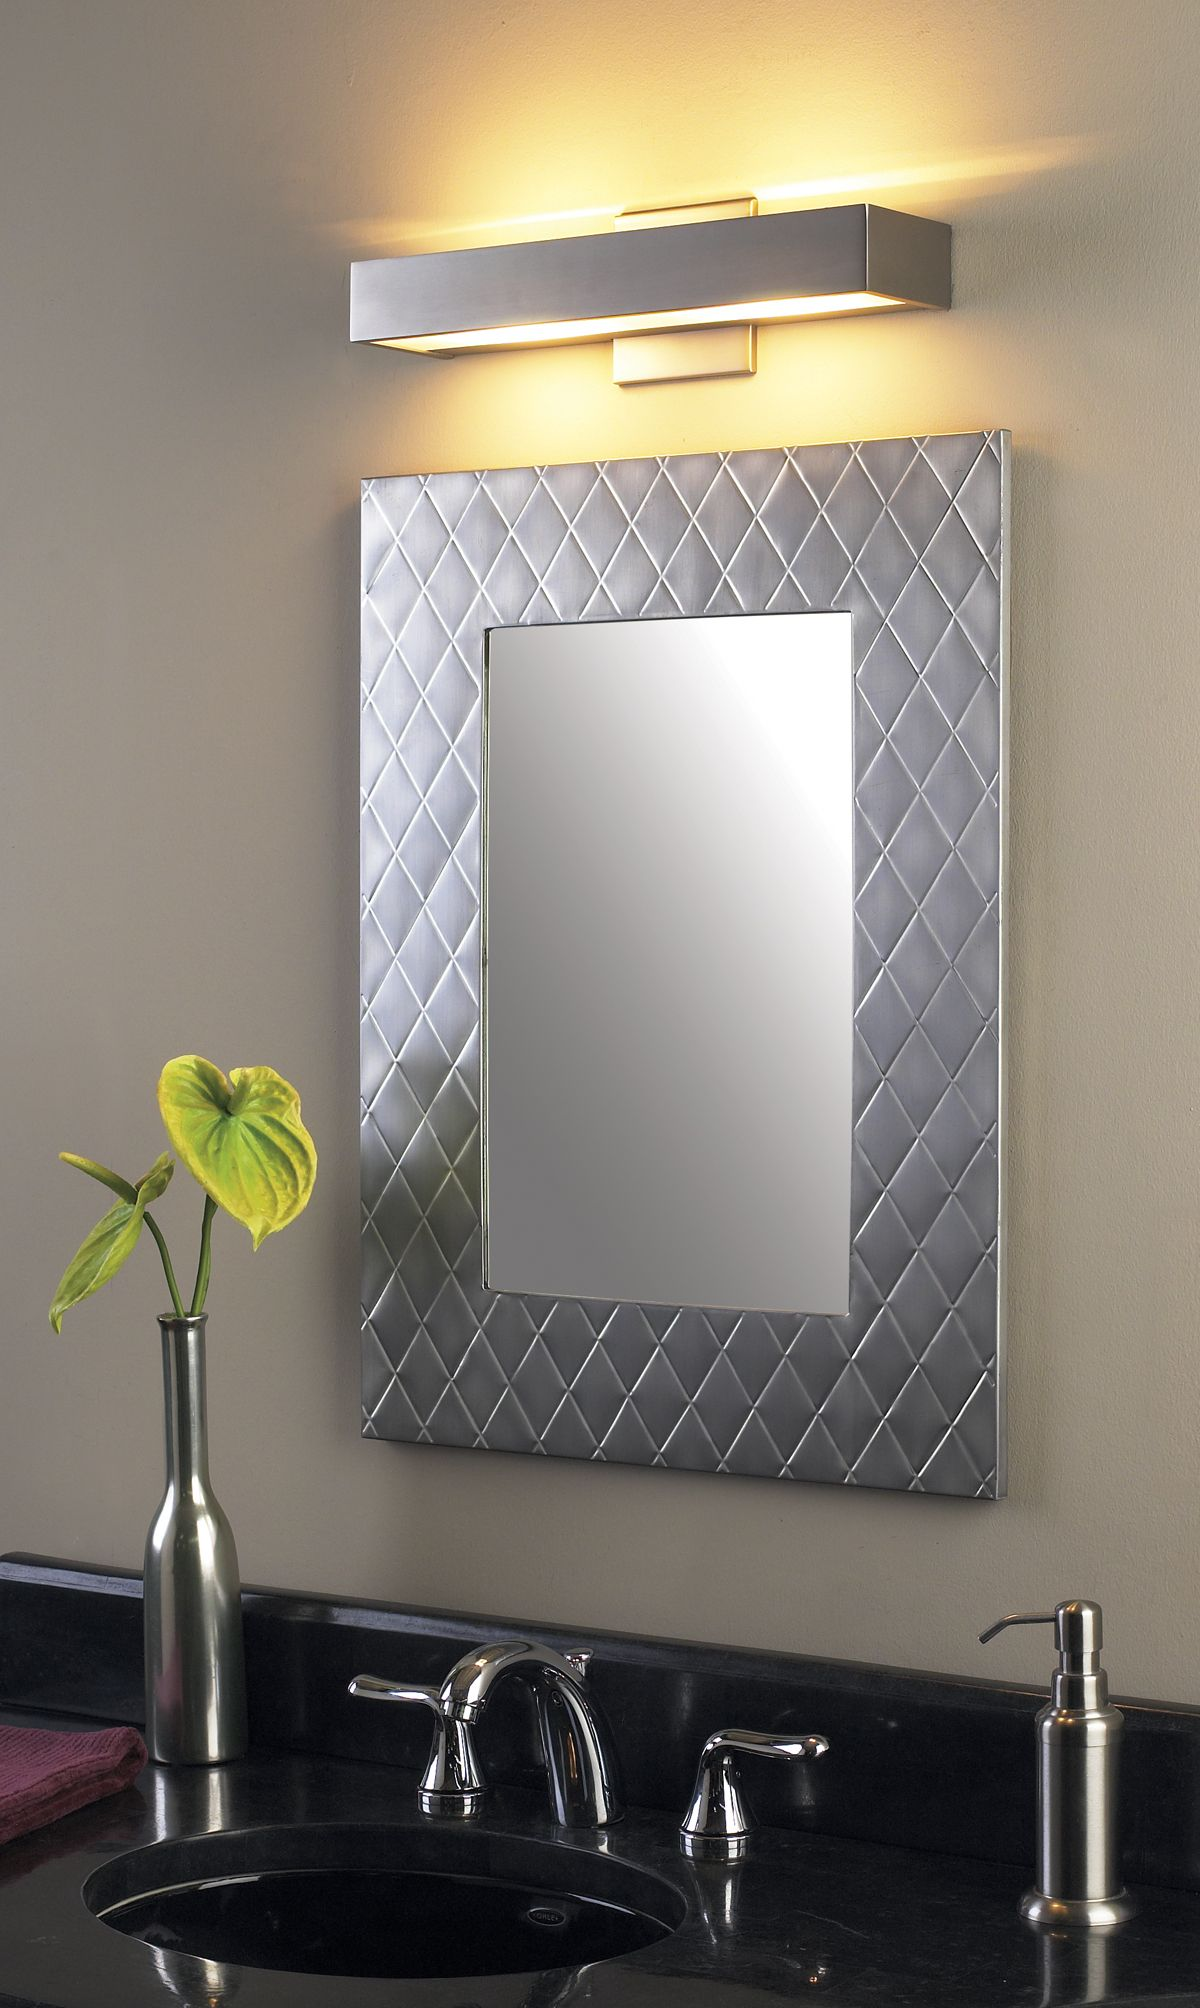 Vanity Light Wall Mirror : How to Pick the Best Bathroom Vanity Lighting Bathroom Vanity Lighting Ideas - Lightology